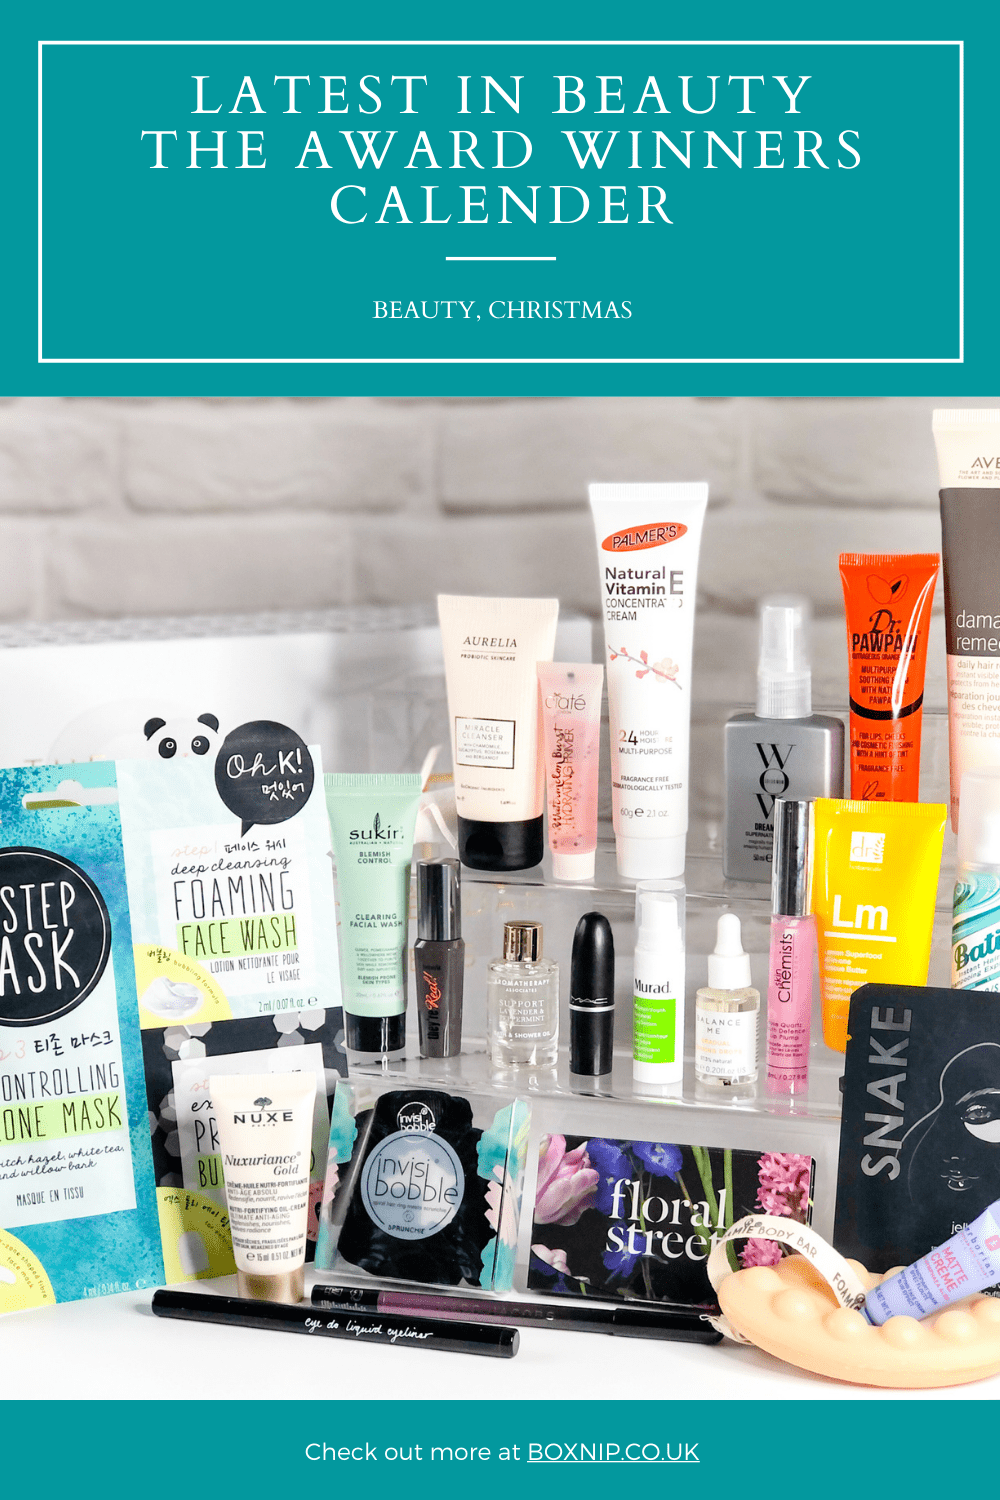 Beauty Calendar: The Award Winners - Pin It